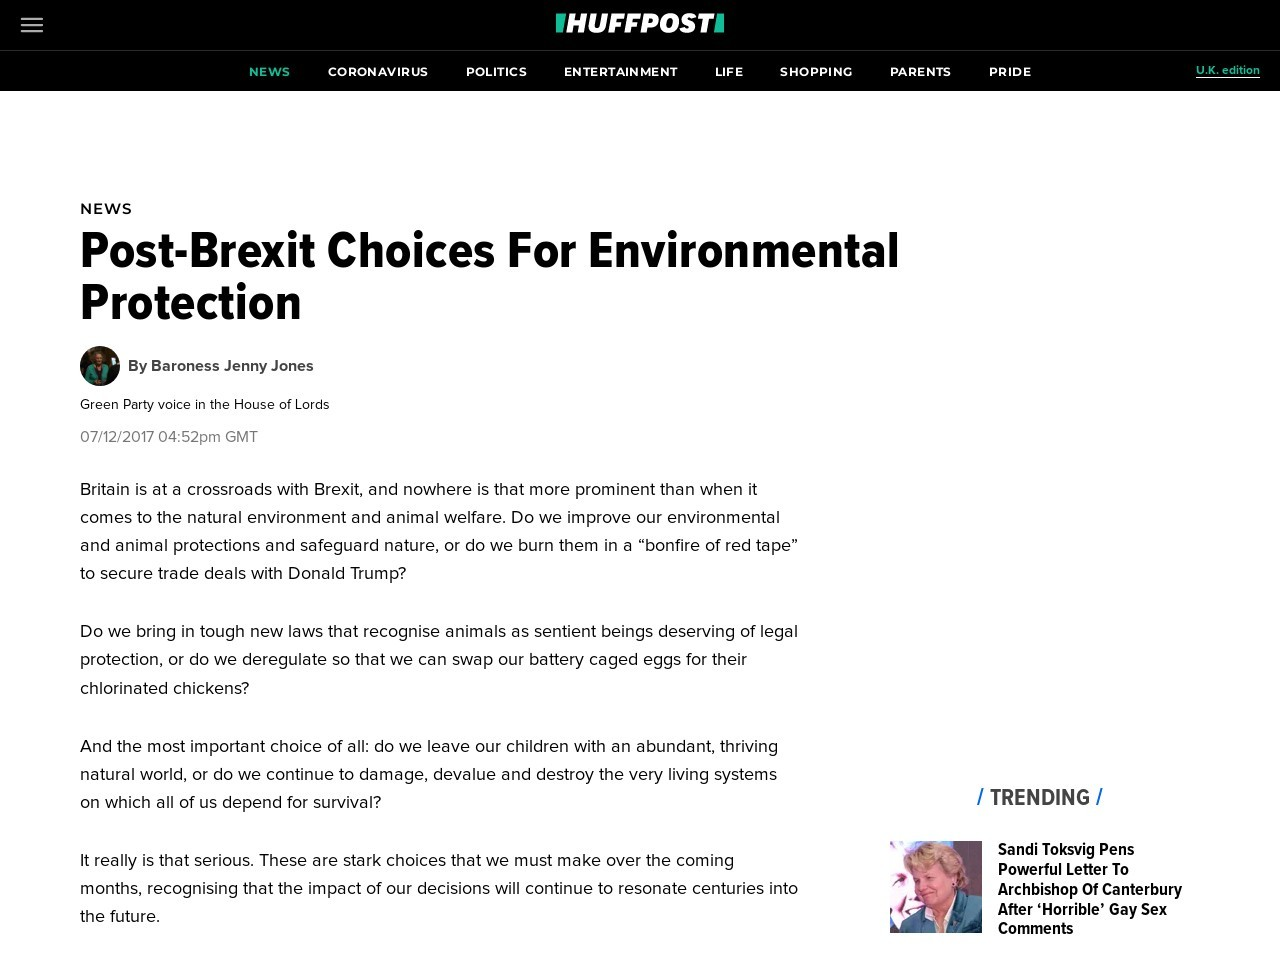 Post-Brexit Choices For Environmental Protection